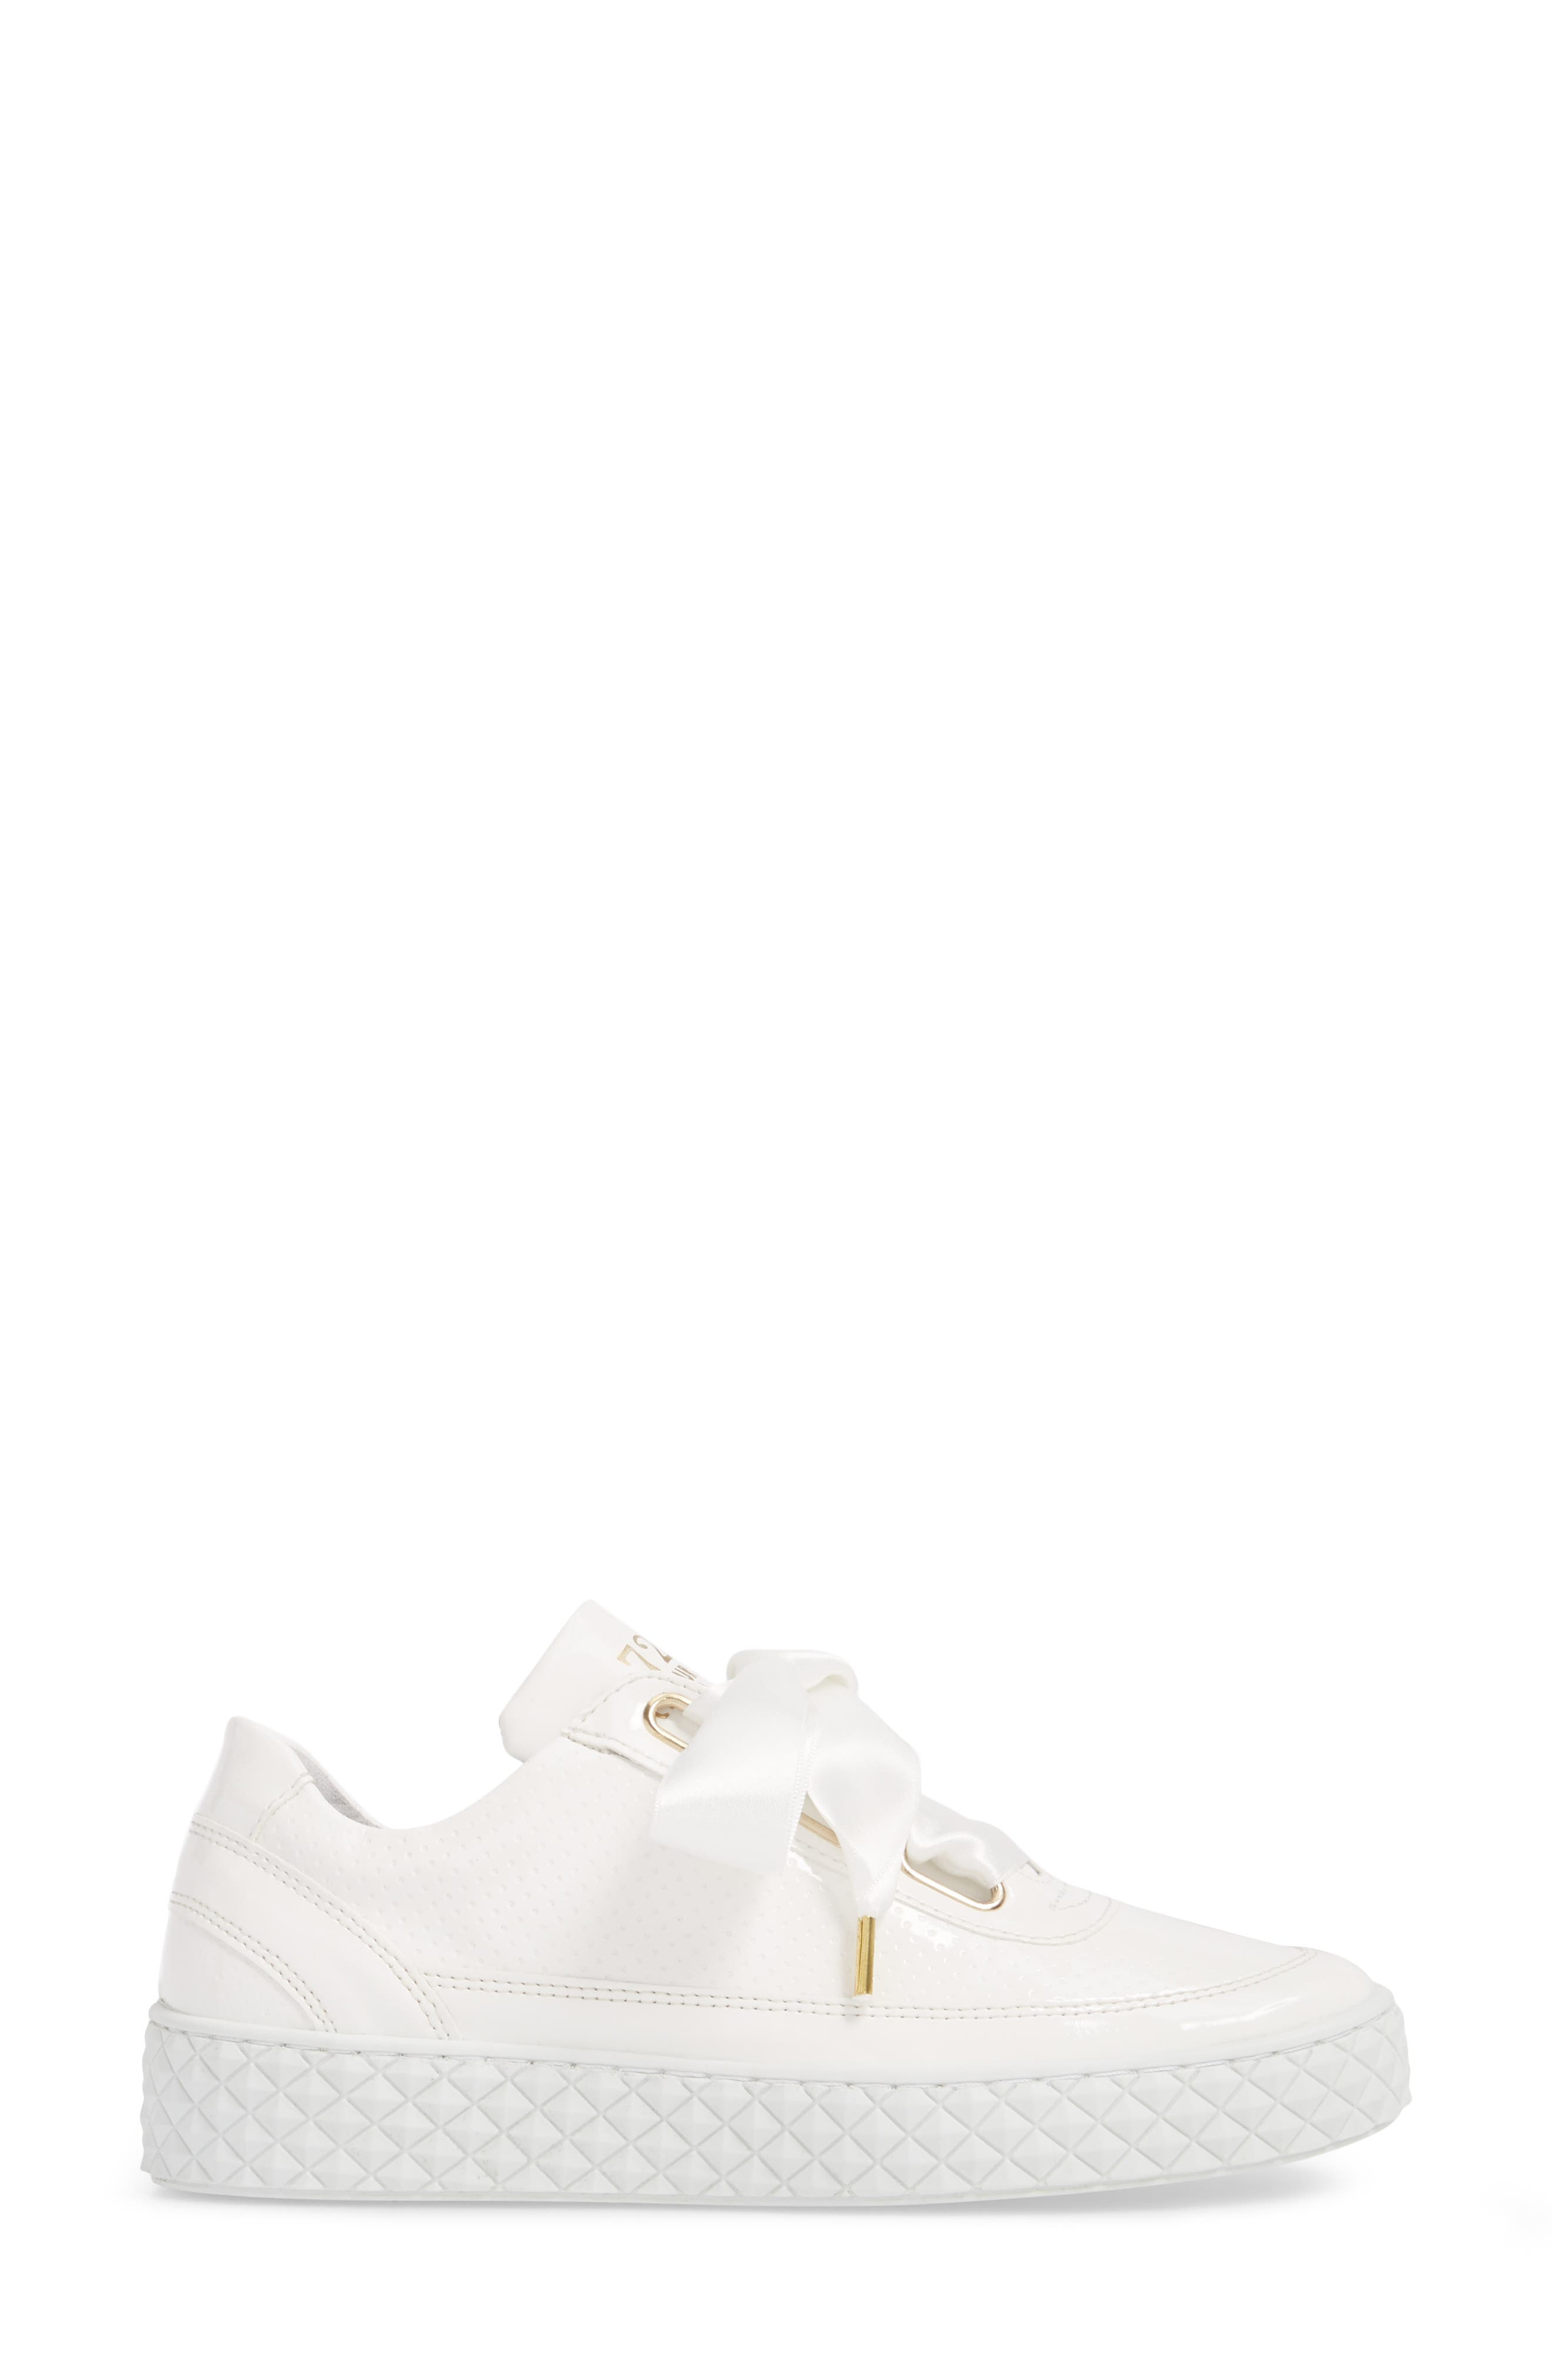 Montreal II Sneaker,                             Alternate thumbnail 3, color,                             White Leather